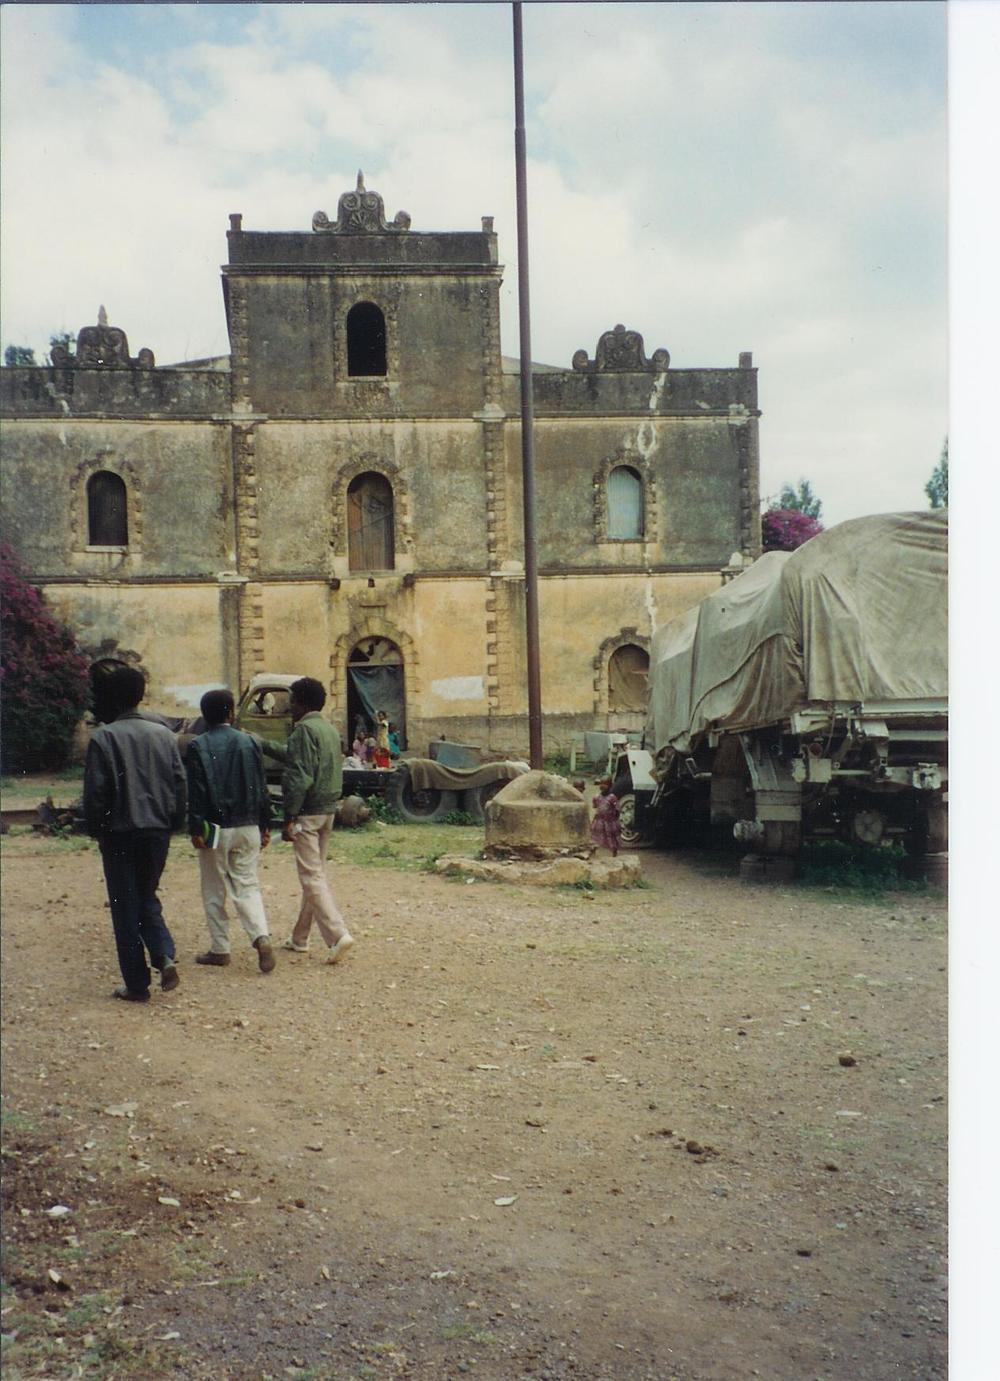 The building had been used by the Derg regime as a military outpost and as well as a prison. Many residents of Axum suffered countless abuses here.